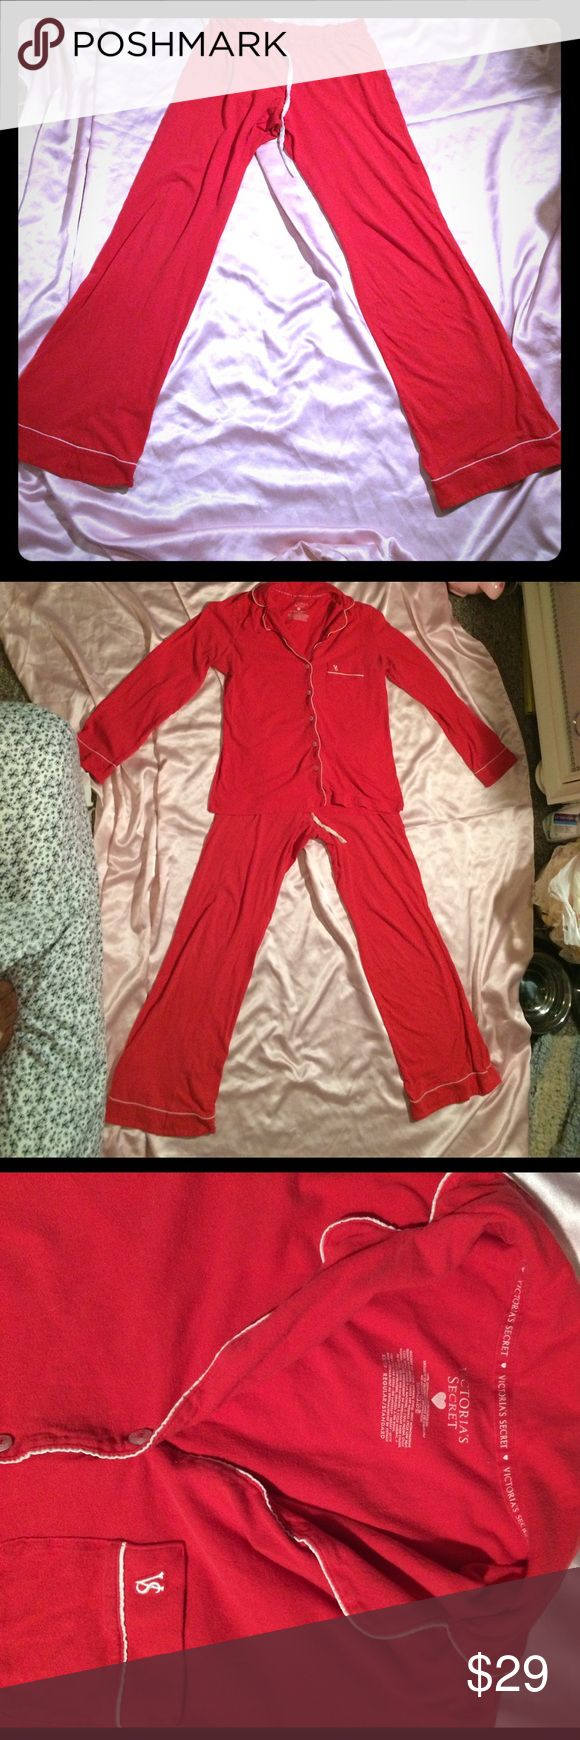 VS XS SLEEPOVER KNIT RED PJ SET Pre-owned condition.  Refer to last photo for tiny tear (can be stitched) & tiny stain. Price reflects. Victoria's Secret Intimates & Sleepwear Pajamas